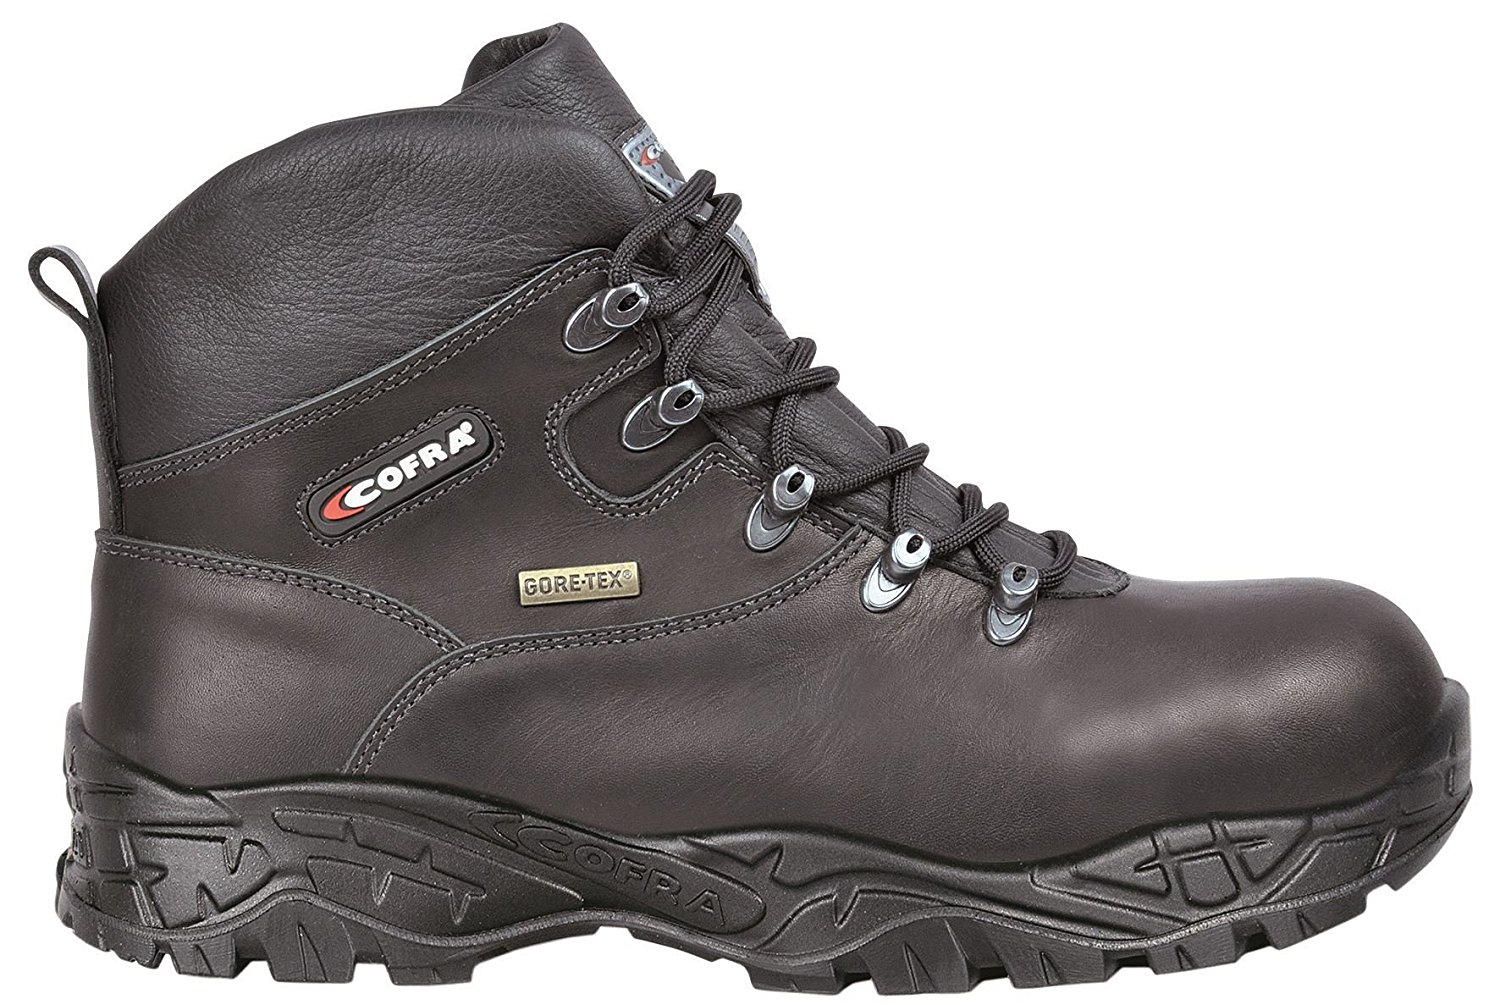 1e35c0b80f0 Cofra New Warren Safety S3 WR SRC Water Resistant Boot, Size 11